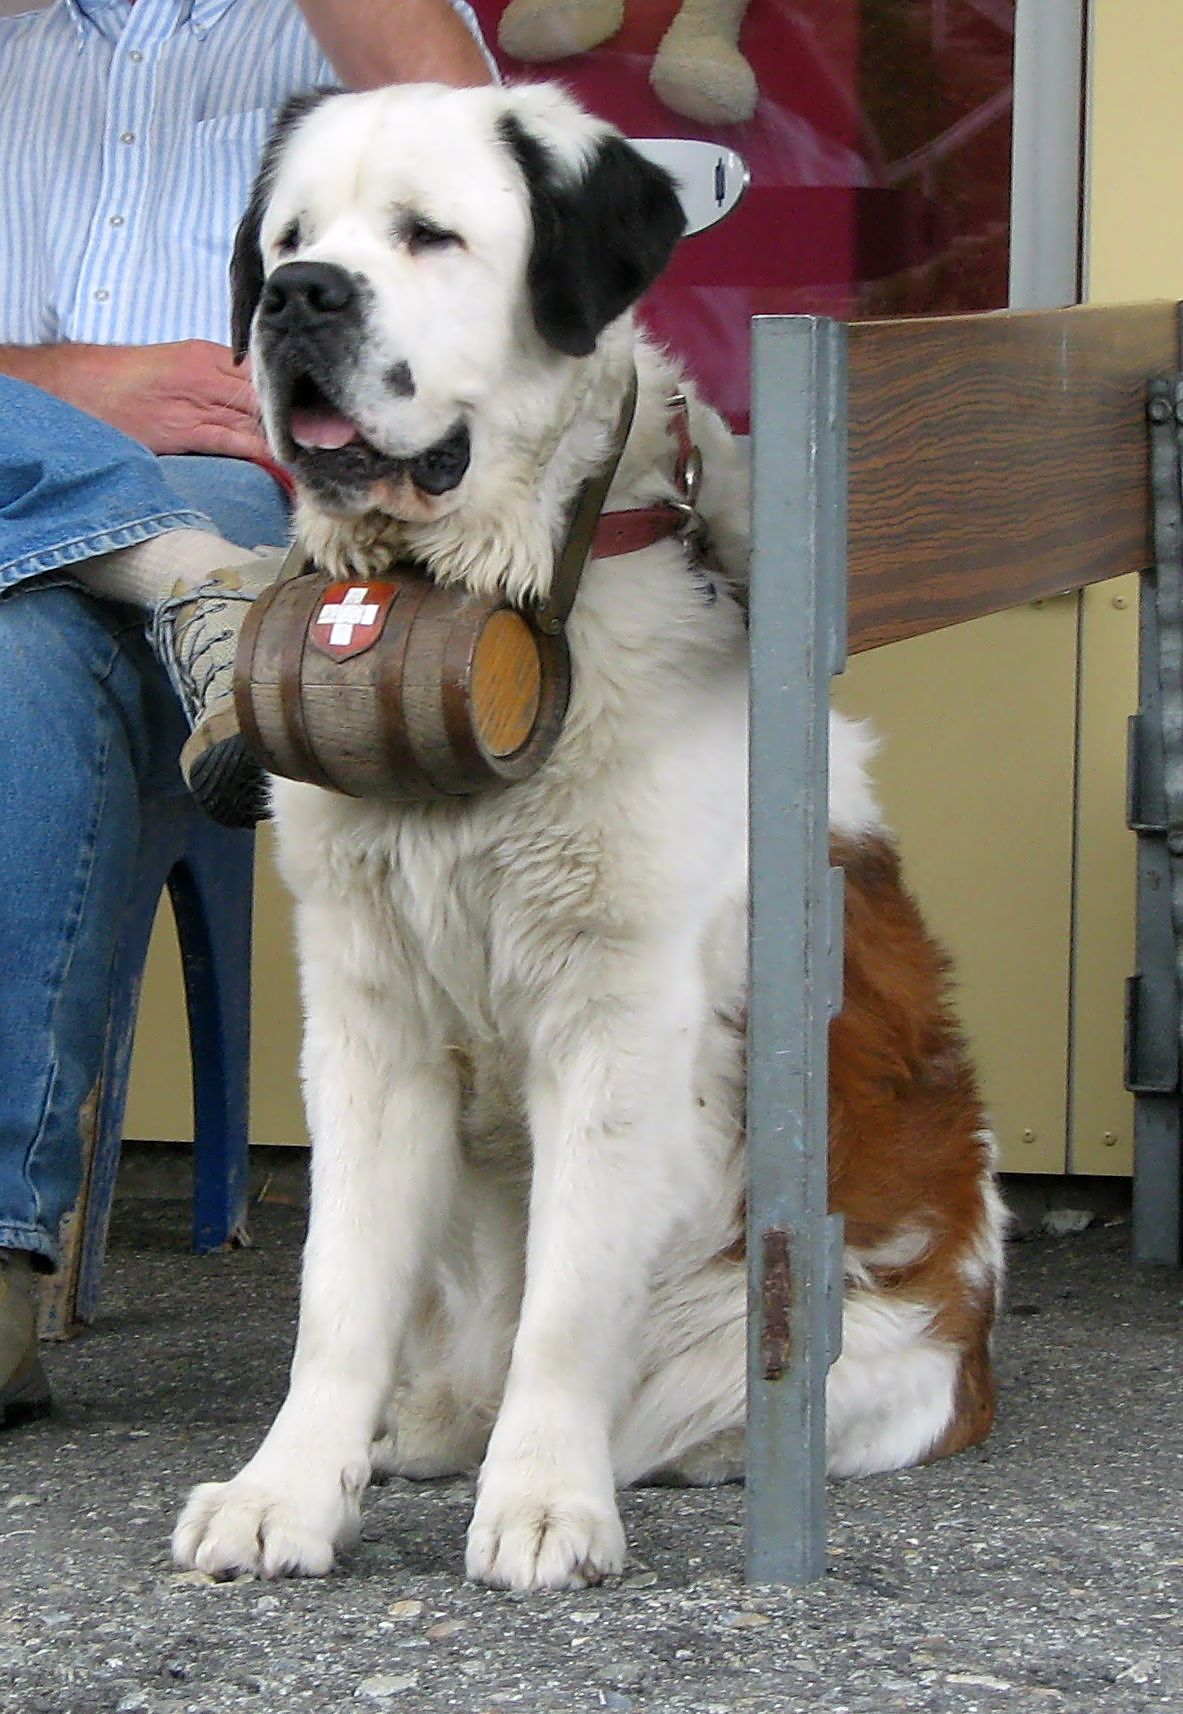 File:A St. Bernard dog with barrel.JPG - Wikimedia Commons